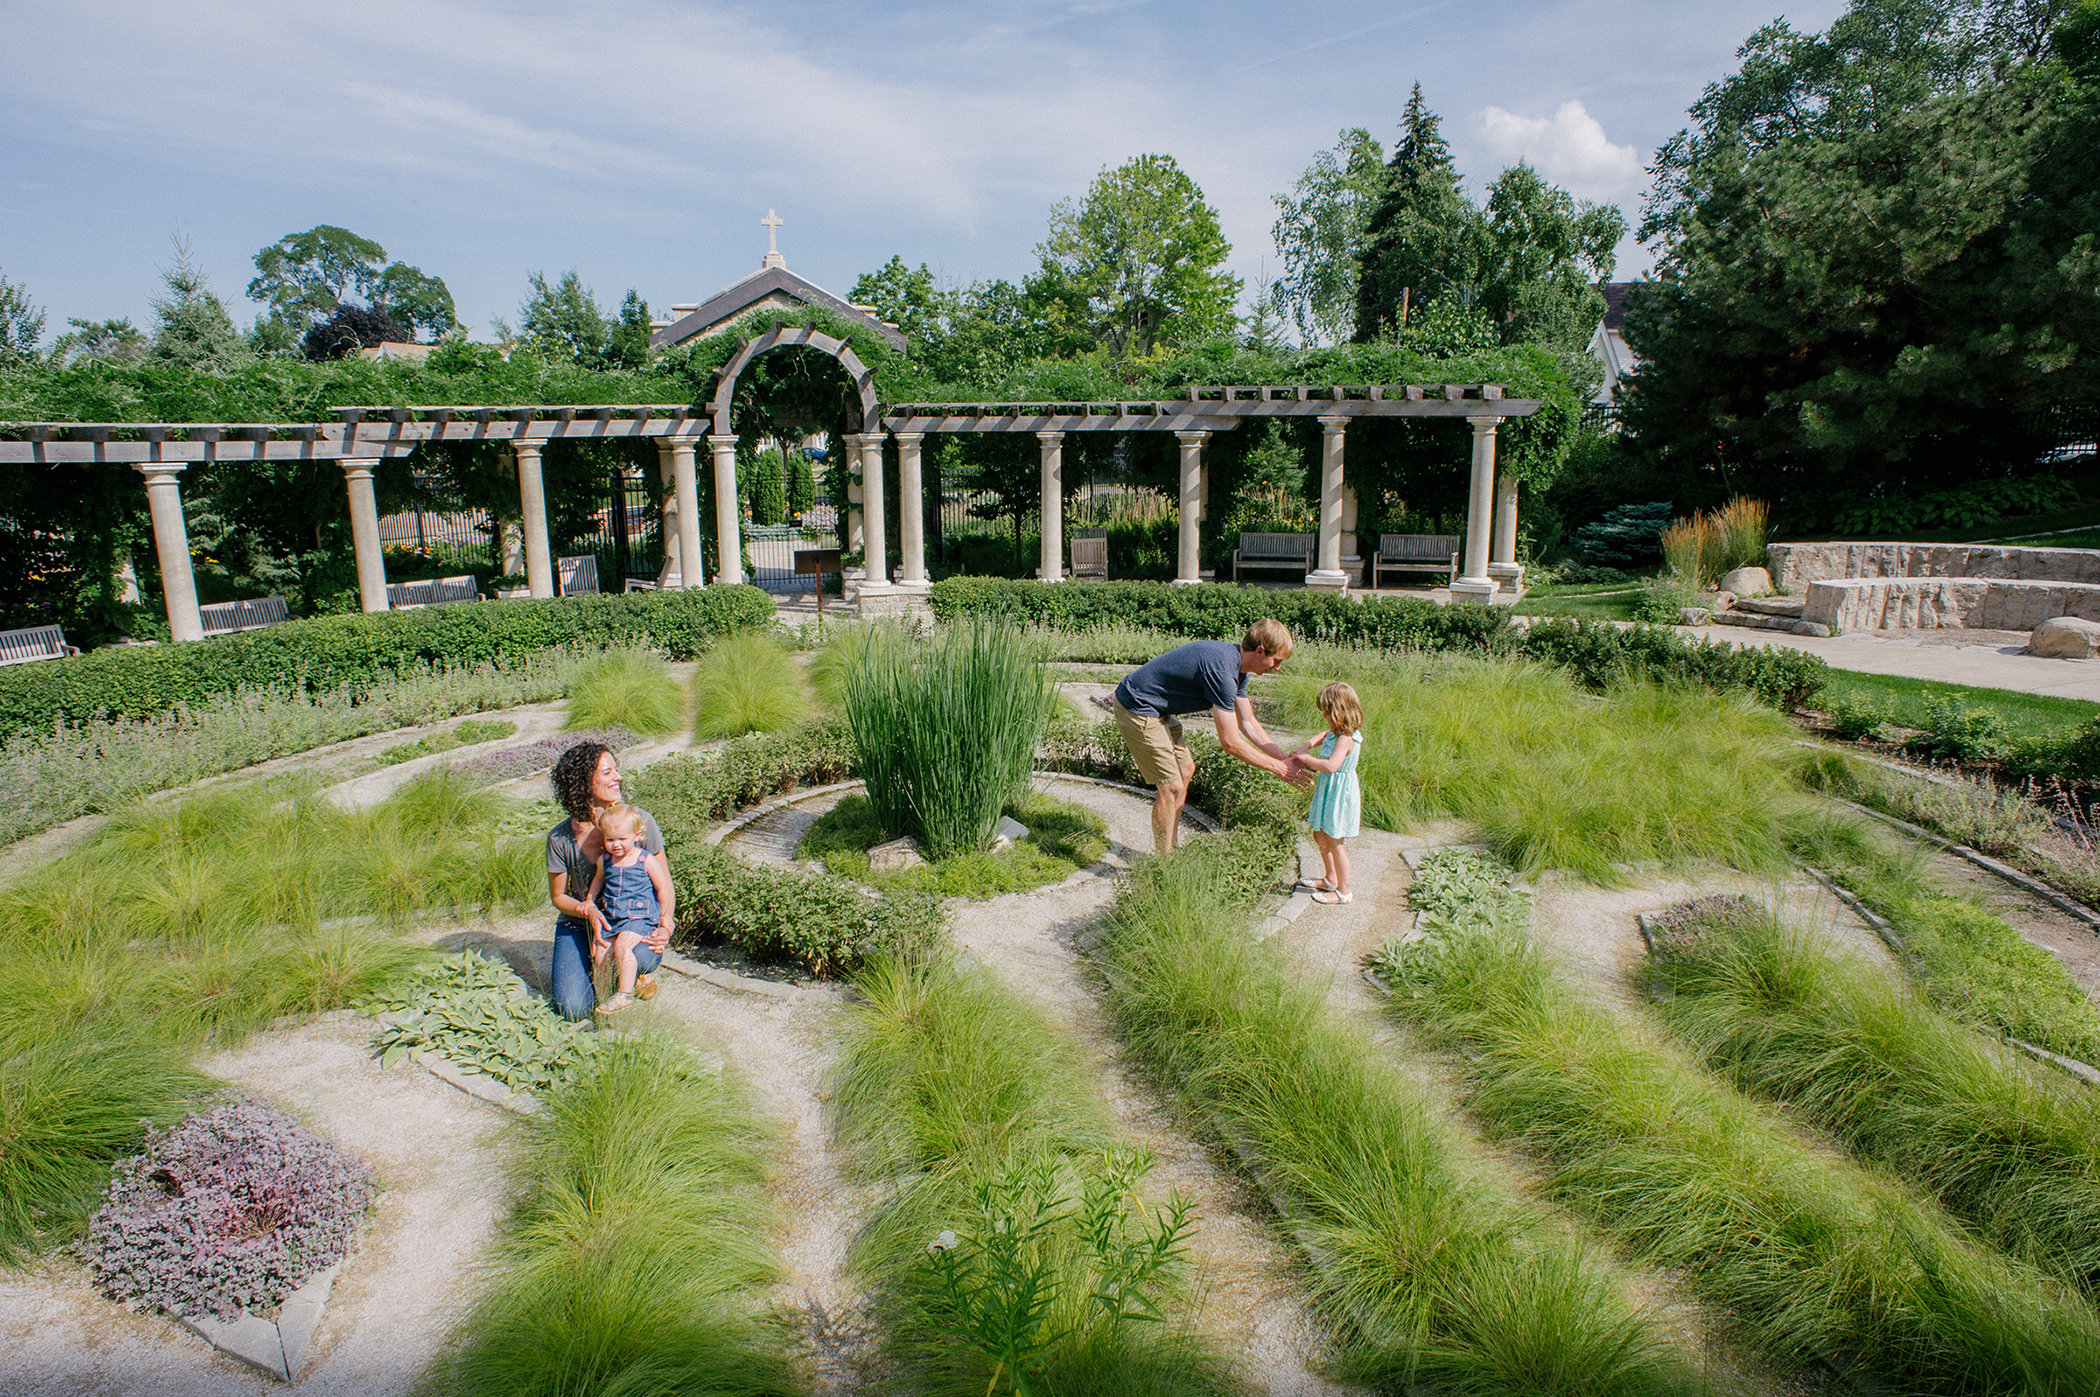 The gardens are rich in layered, seasonal plantings with water features of bubbling stones and stream channels weaving physically and metaphorically through the space.